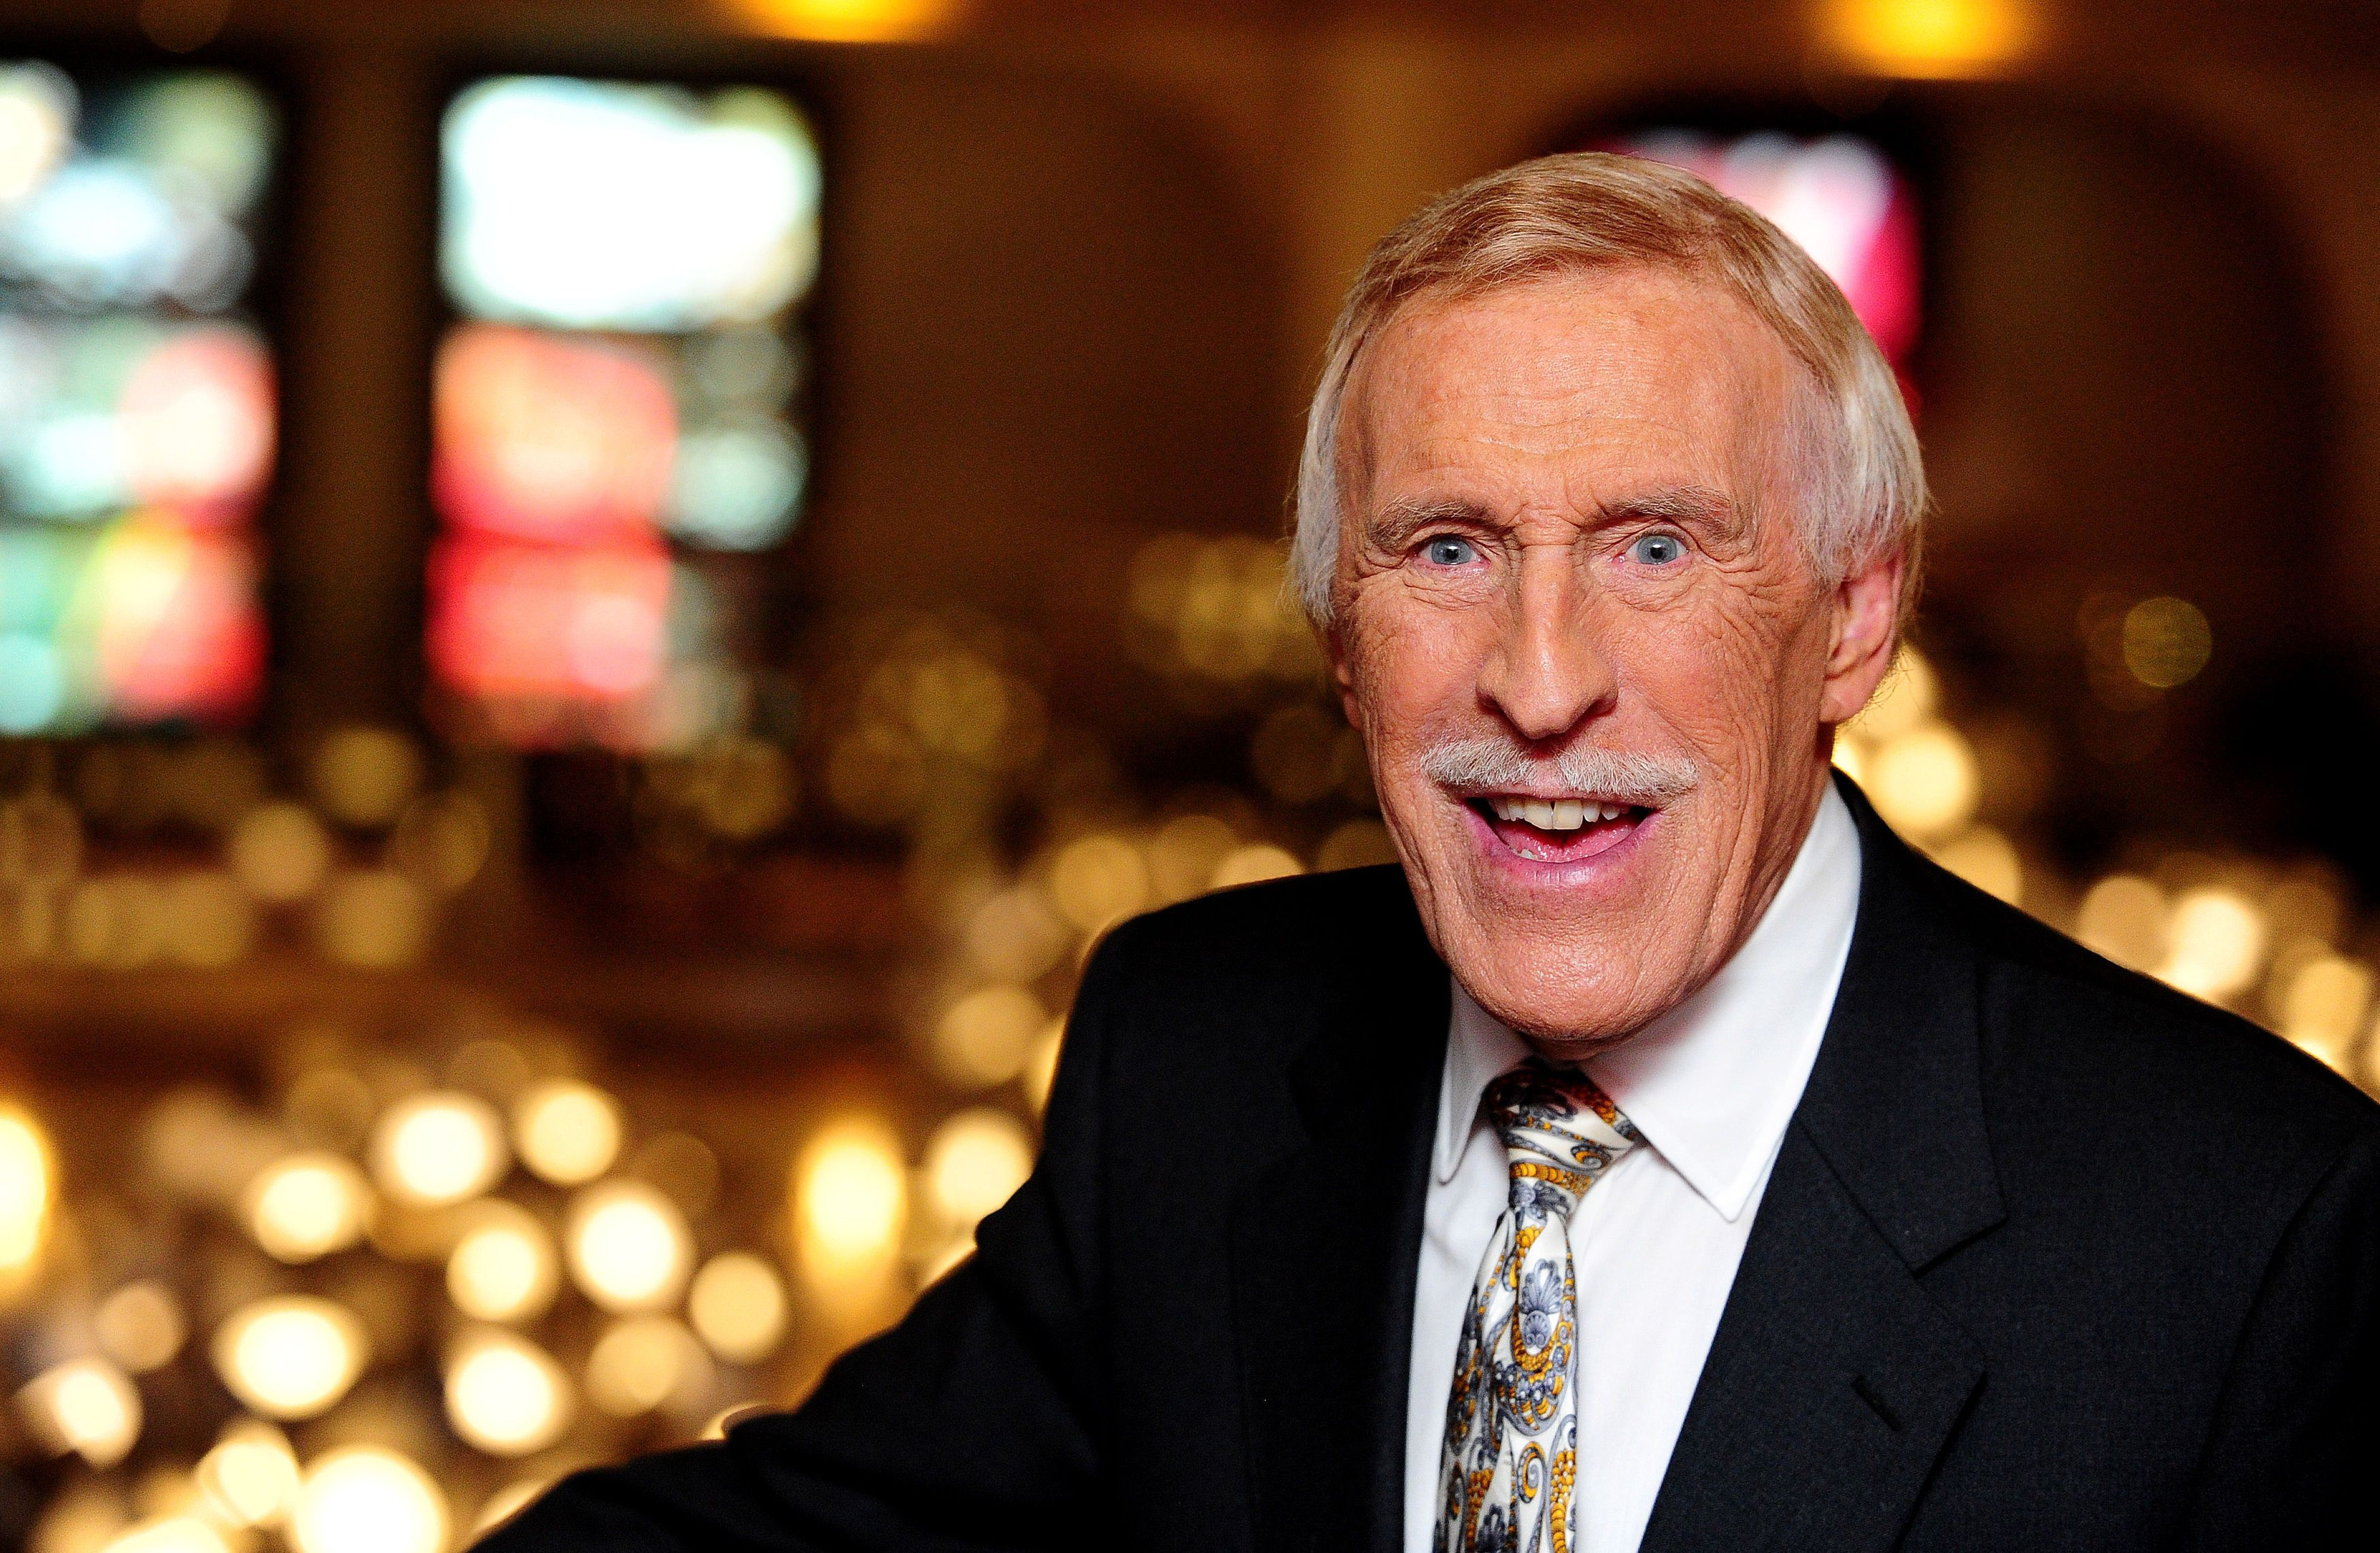 Sir Bruce Forsyth's Private Funeral Has Taken Place, Ahead Of Public